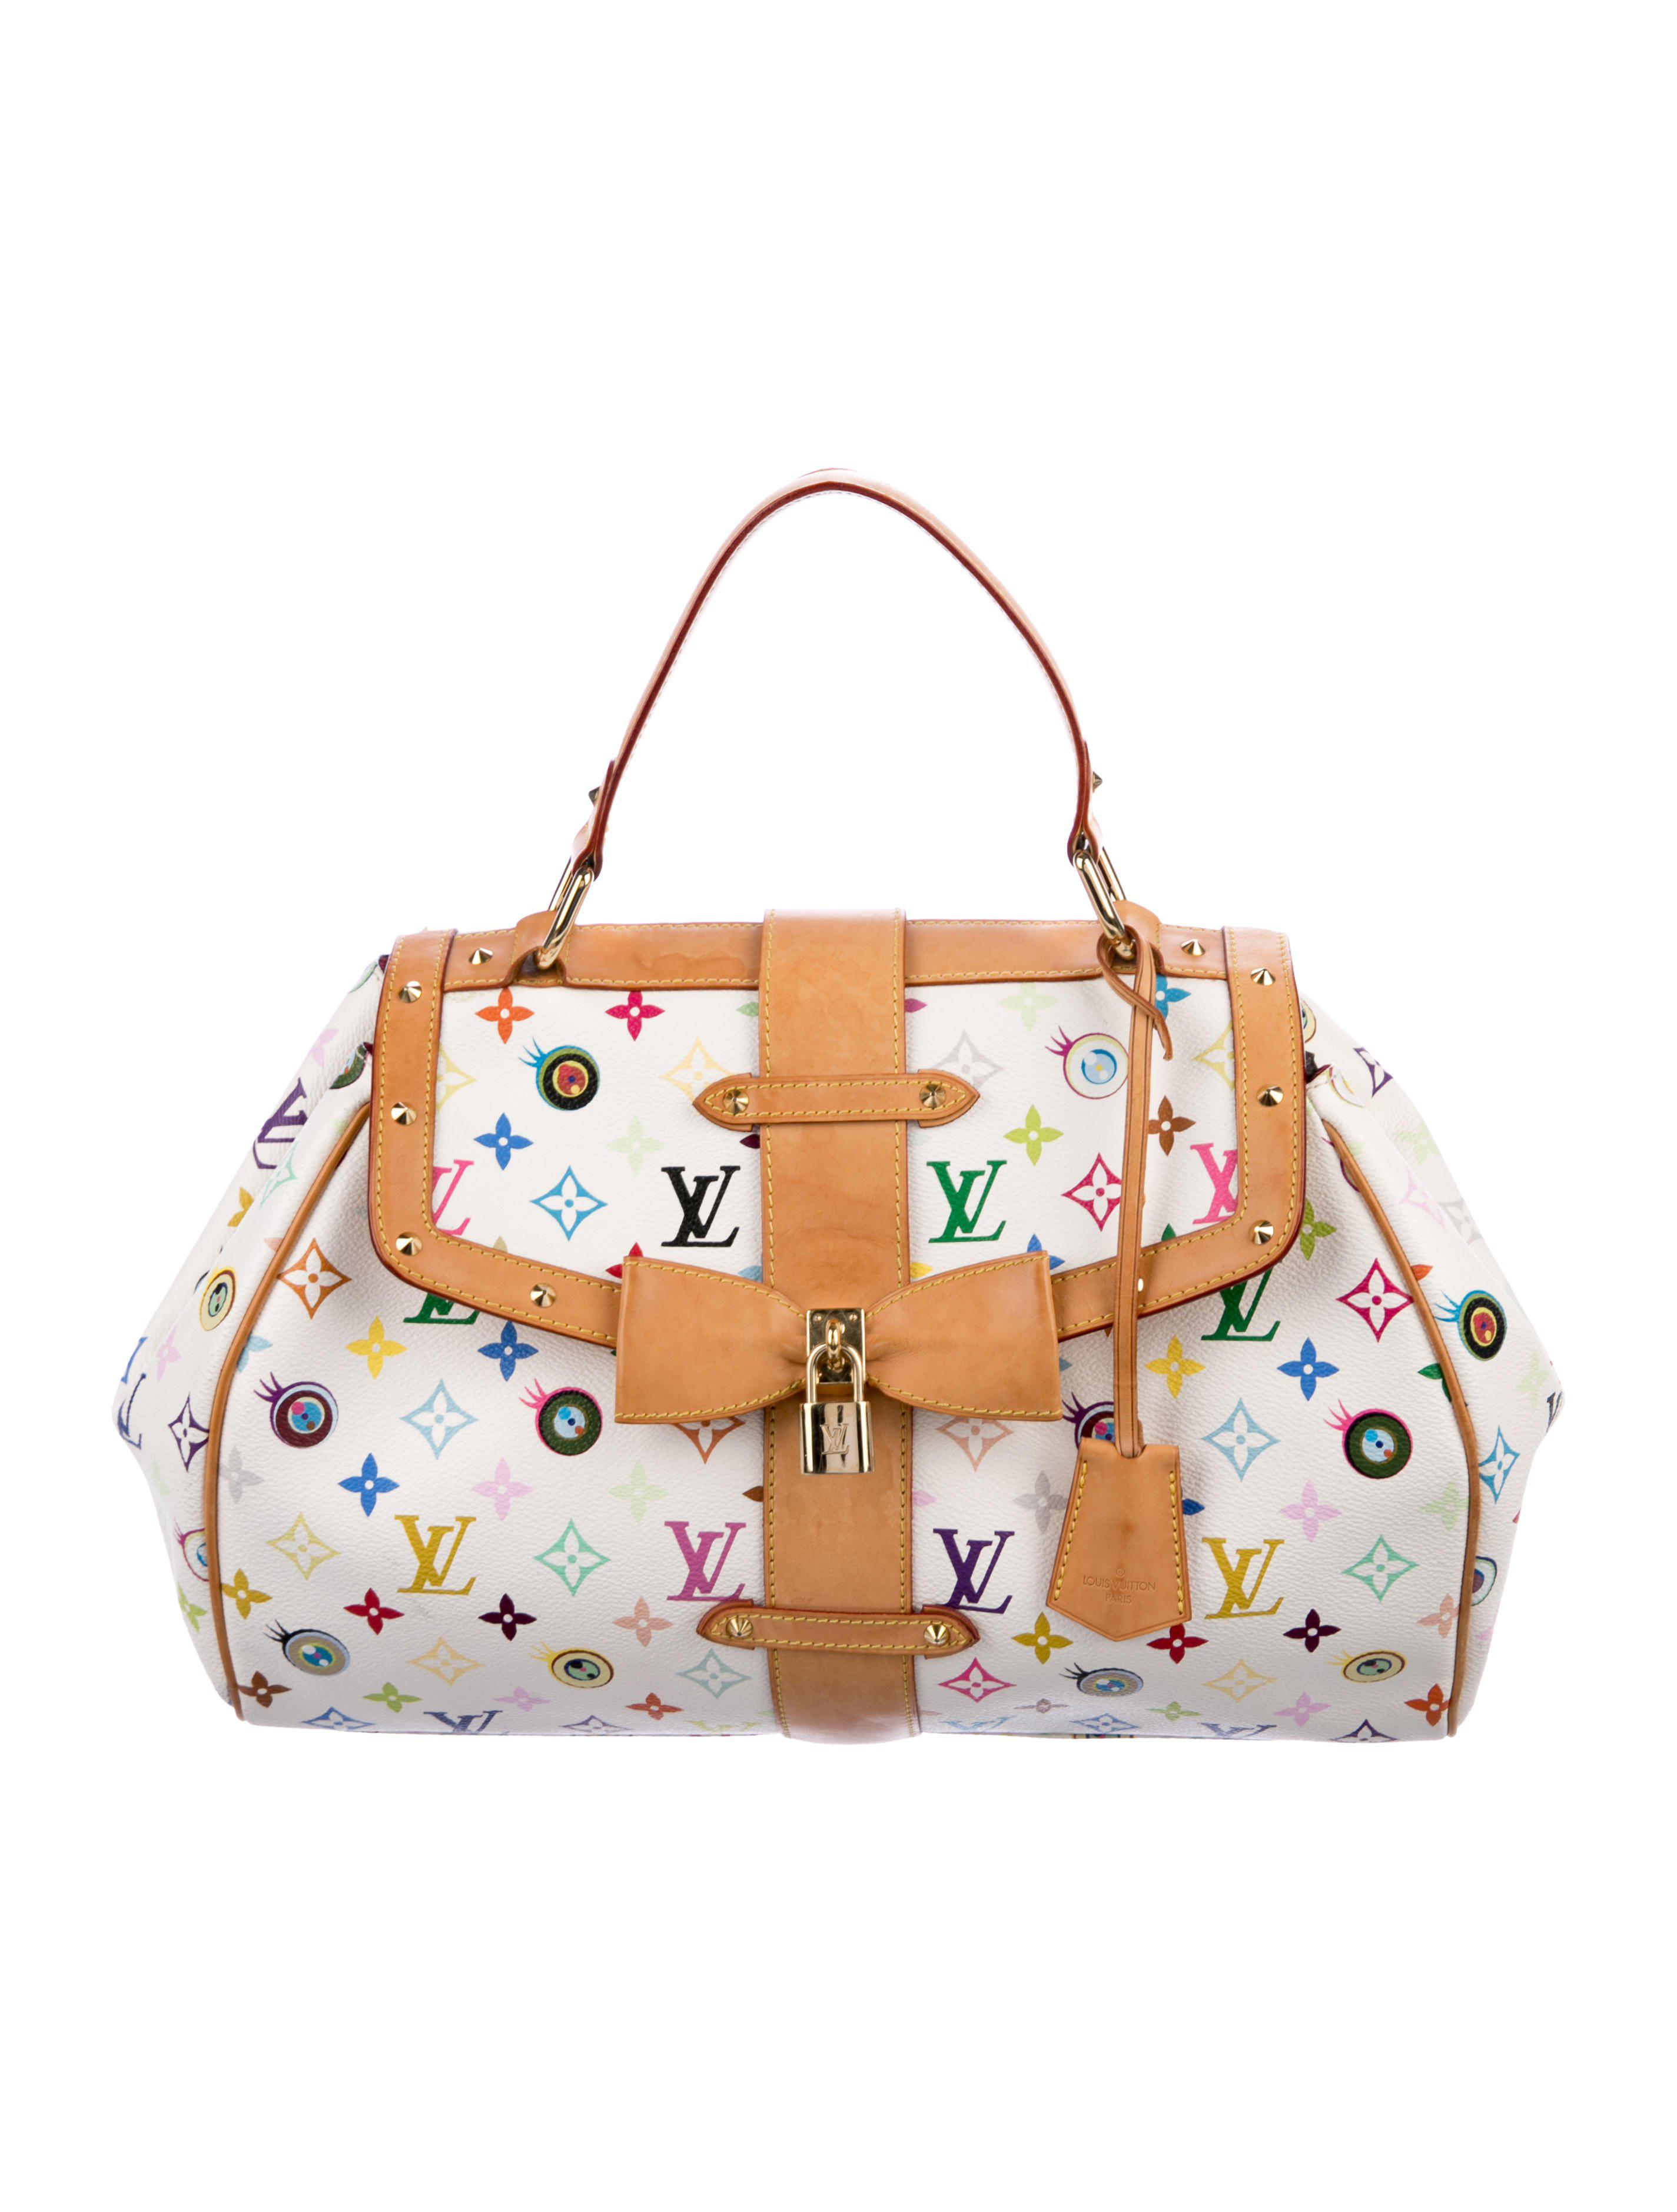 6d686cd2cca7f ... Love Louis Vuitton Limited Edition Monogram Multicolore Need You  Shoulder Bag L V バッグ ...